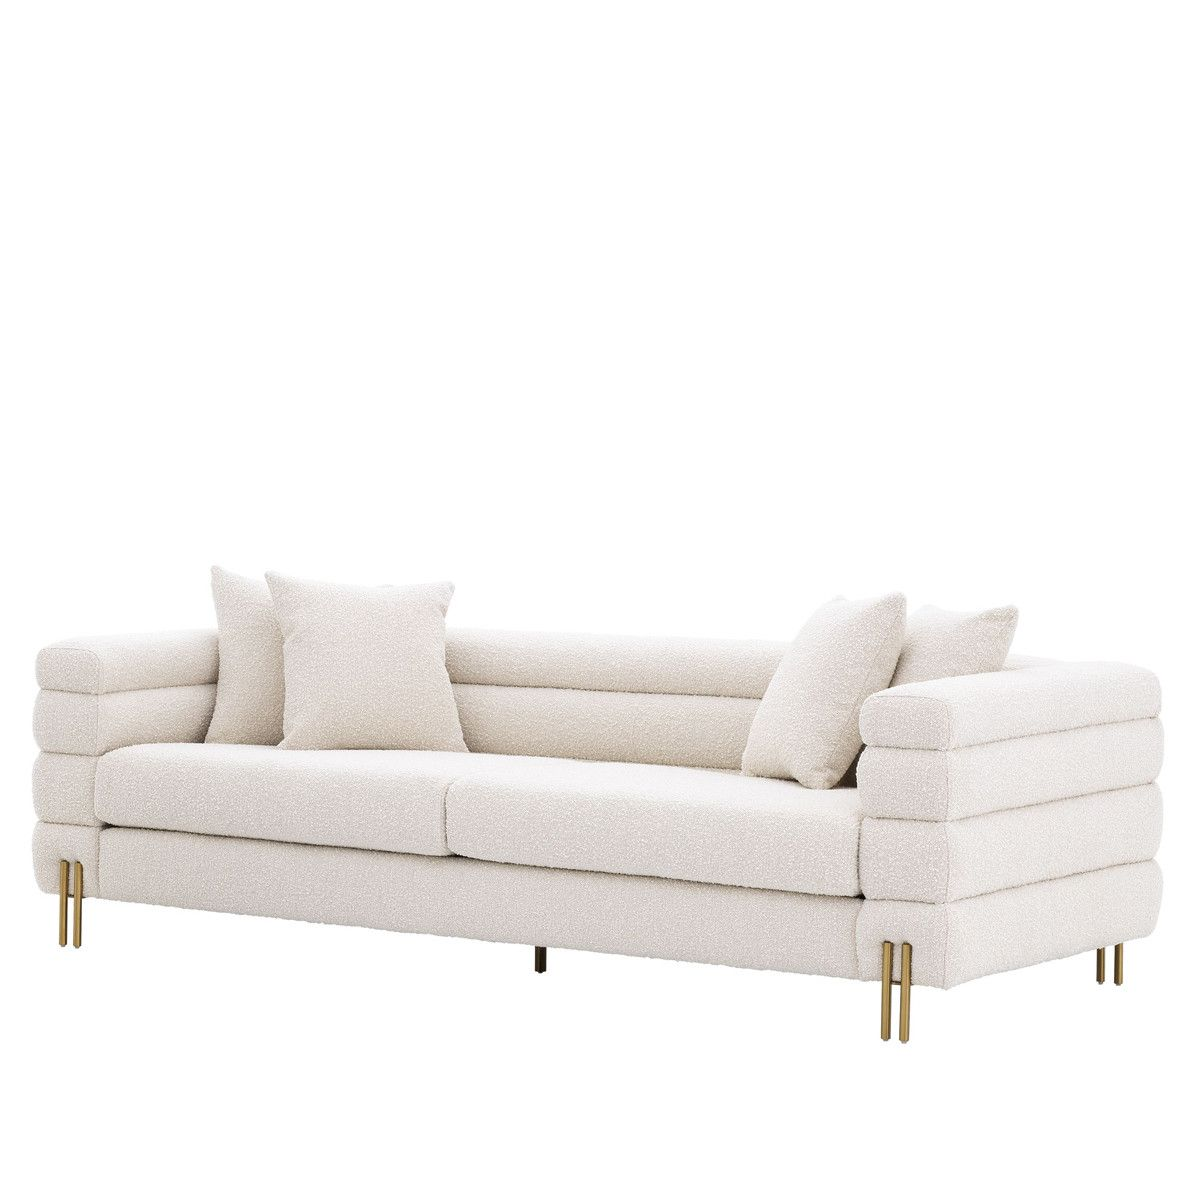 Eichholtz York Sofa 230 Cm Bouclé Cream Living Room Furniture Styles Sofa Sofa Furniture